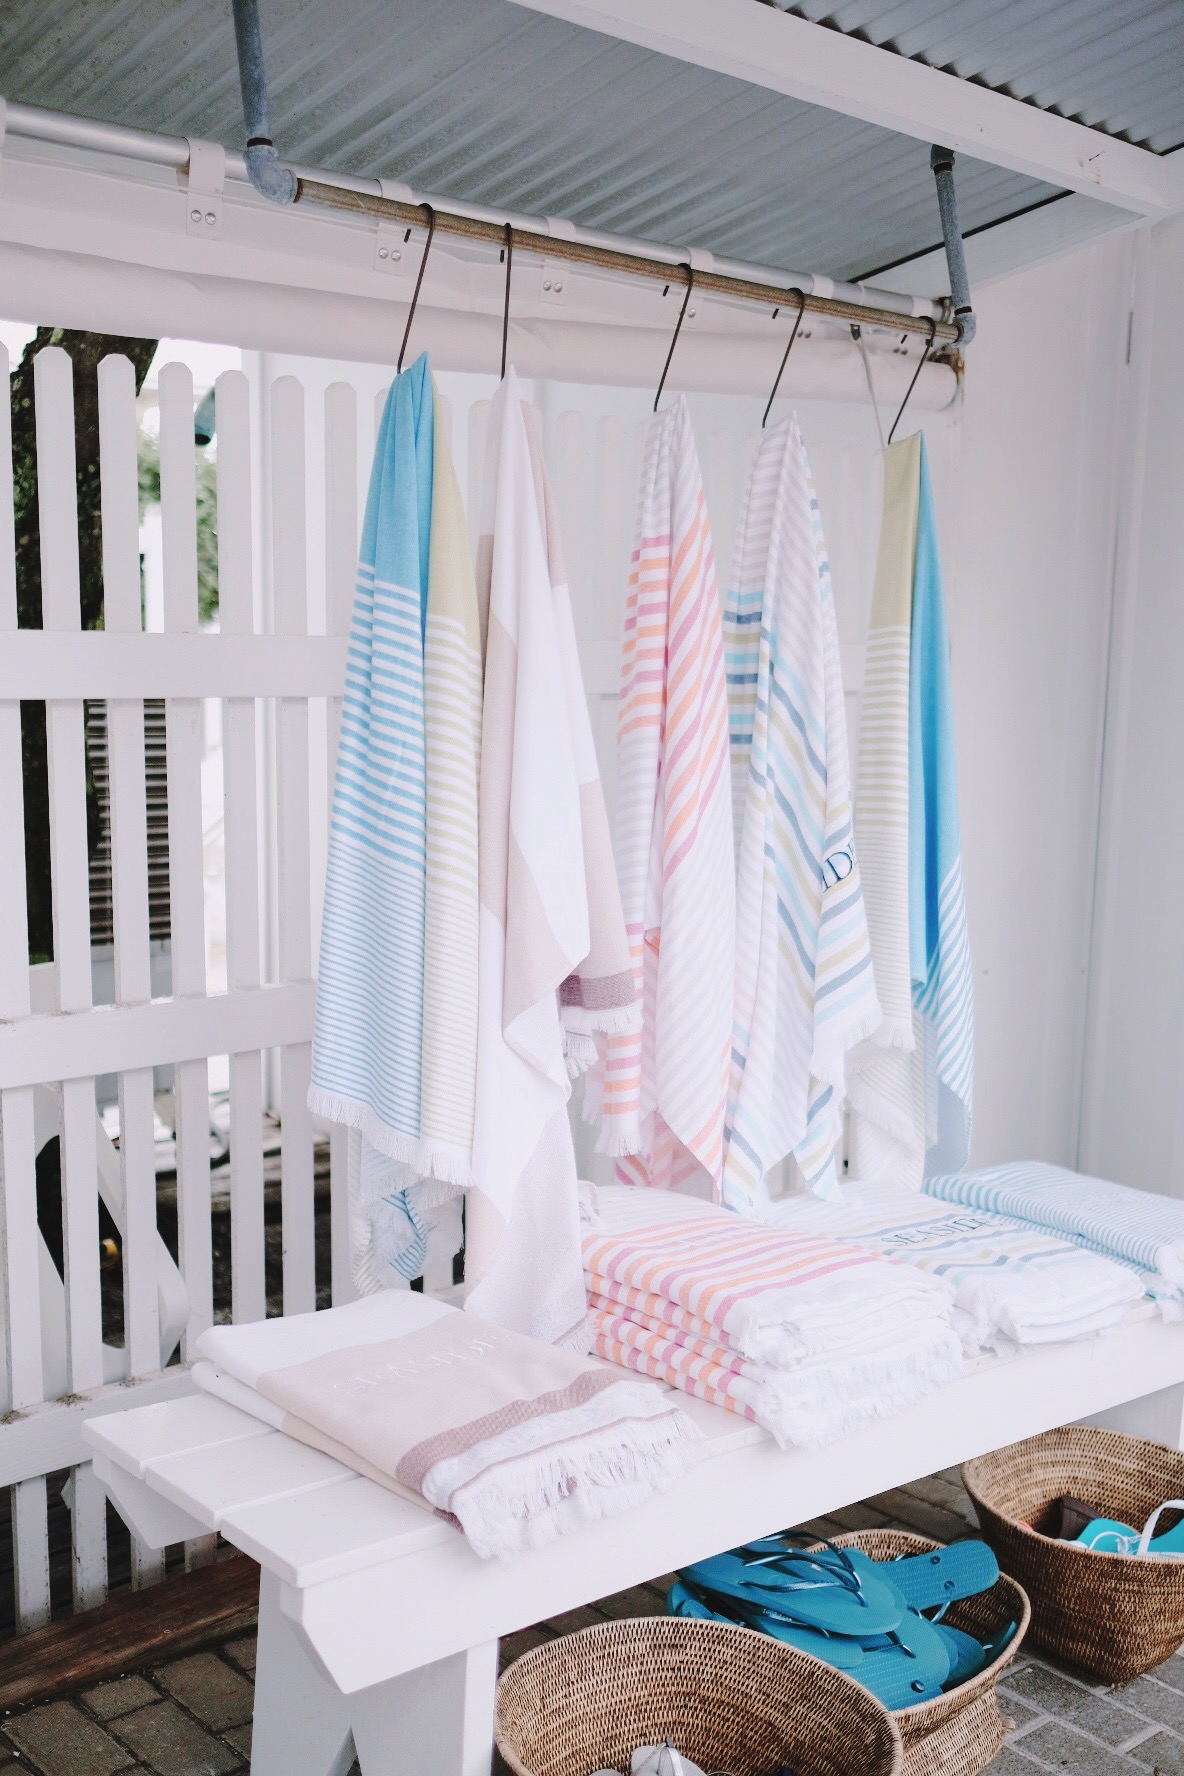 Striped beach towels | Miss Madeline Rose